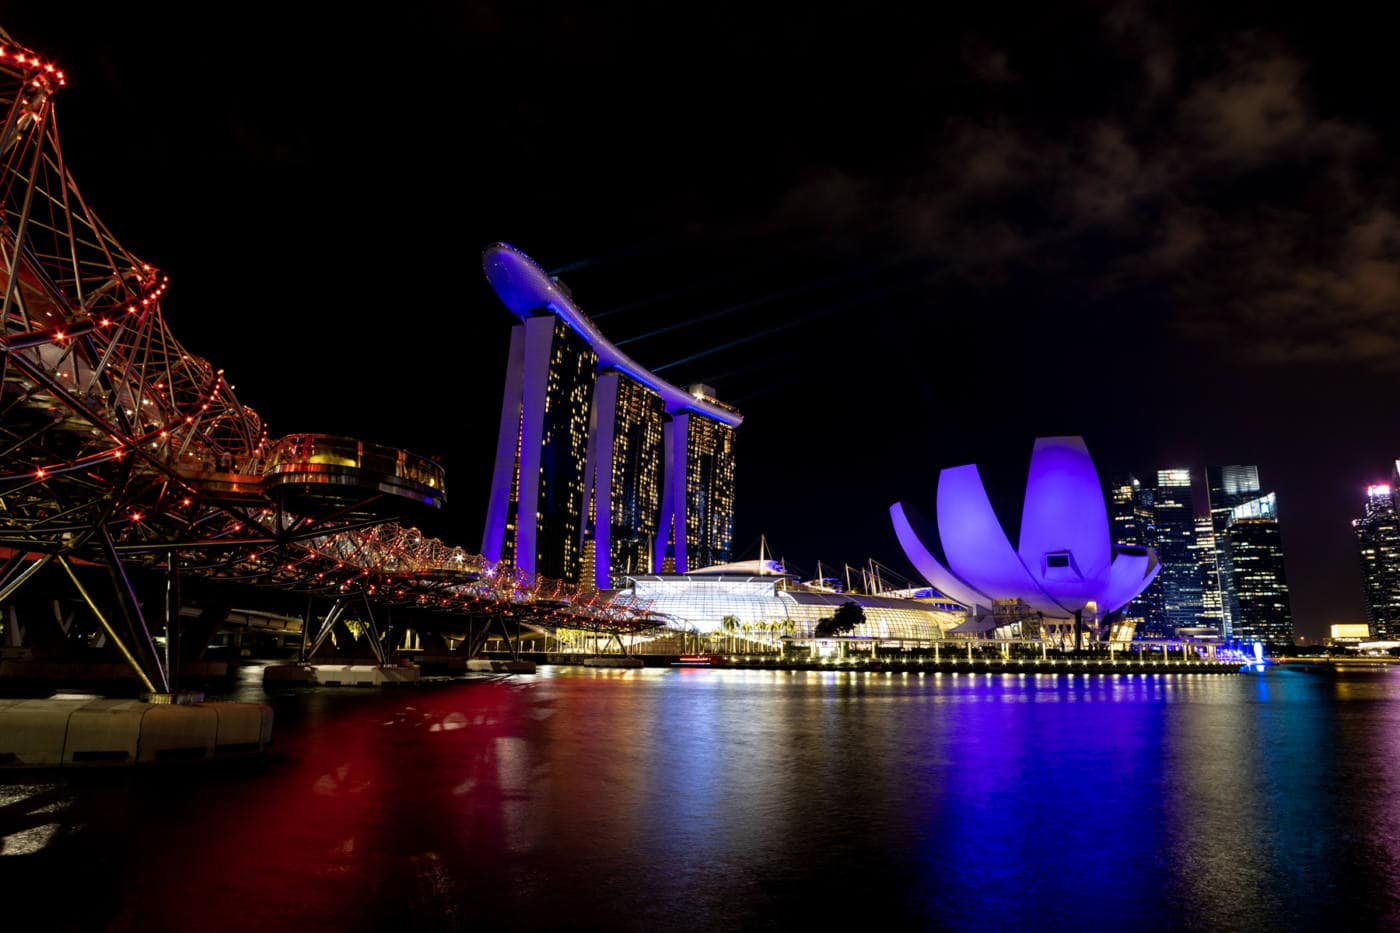 The nightly light and laser show at the Marina Bay Sands hotel in Singapore